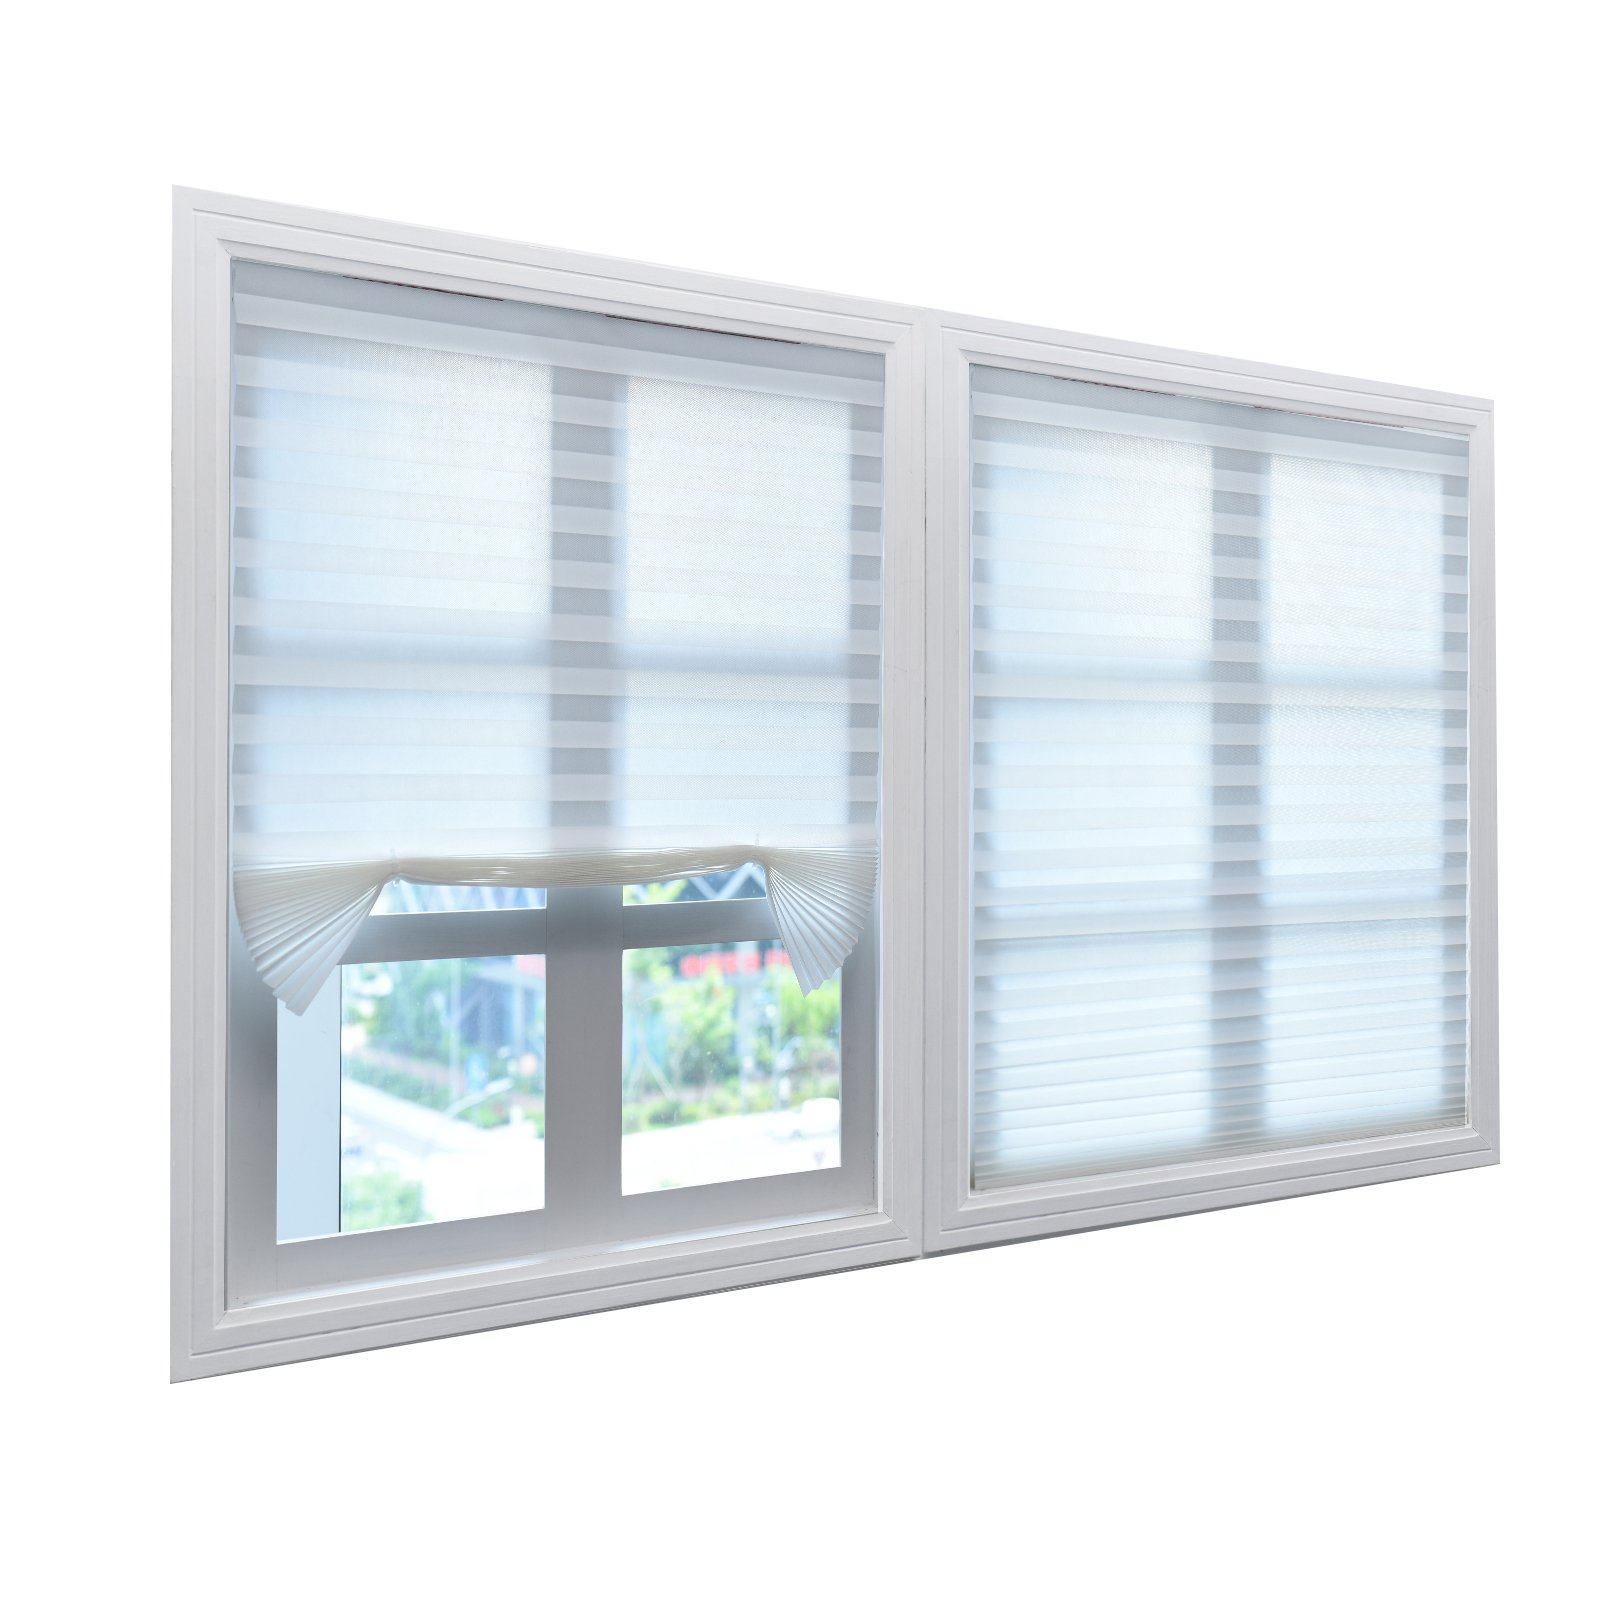 6 Pack Pleated Fabric Window Shade White Light Filtering Shades, 36 Inch x 72 Inch, Easy to Install, with Clips by BOBOTOGO